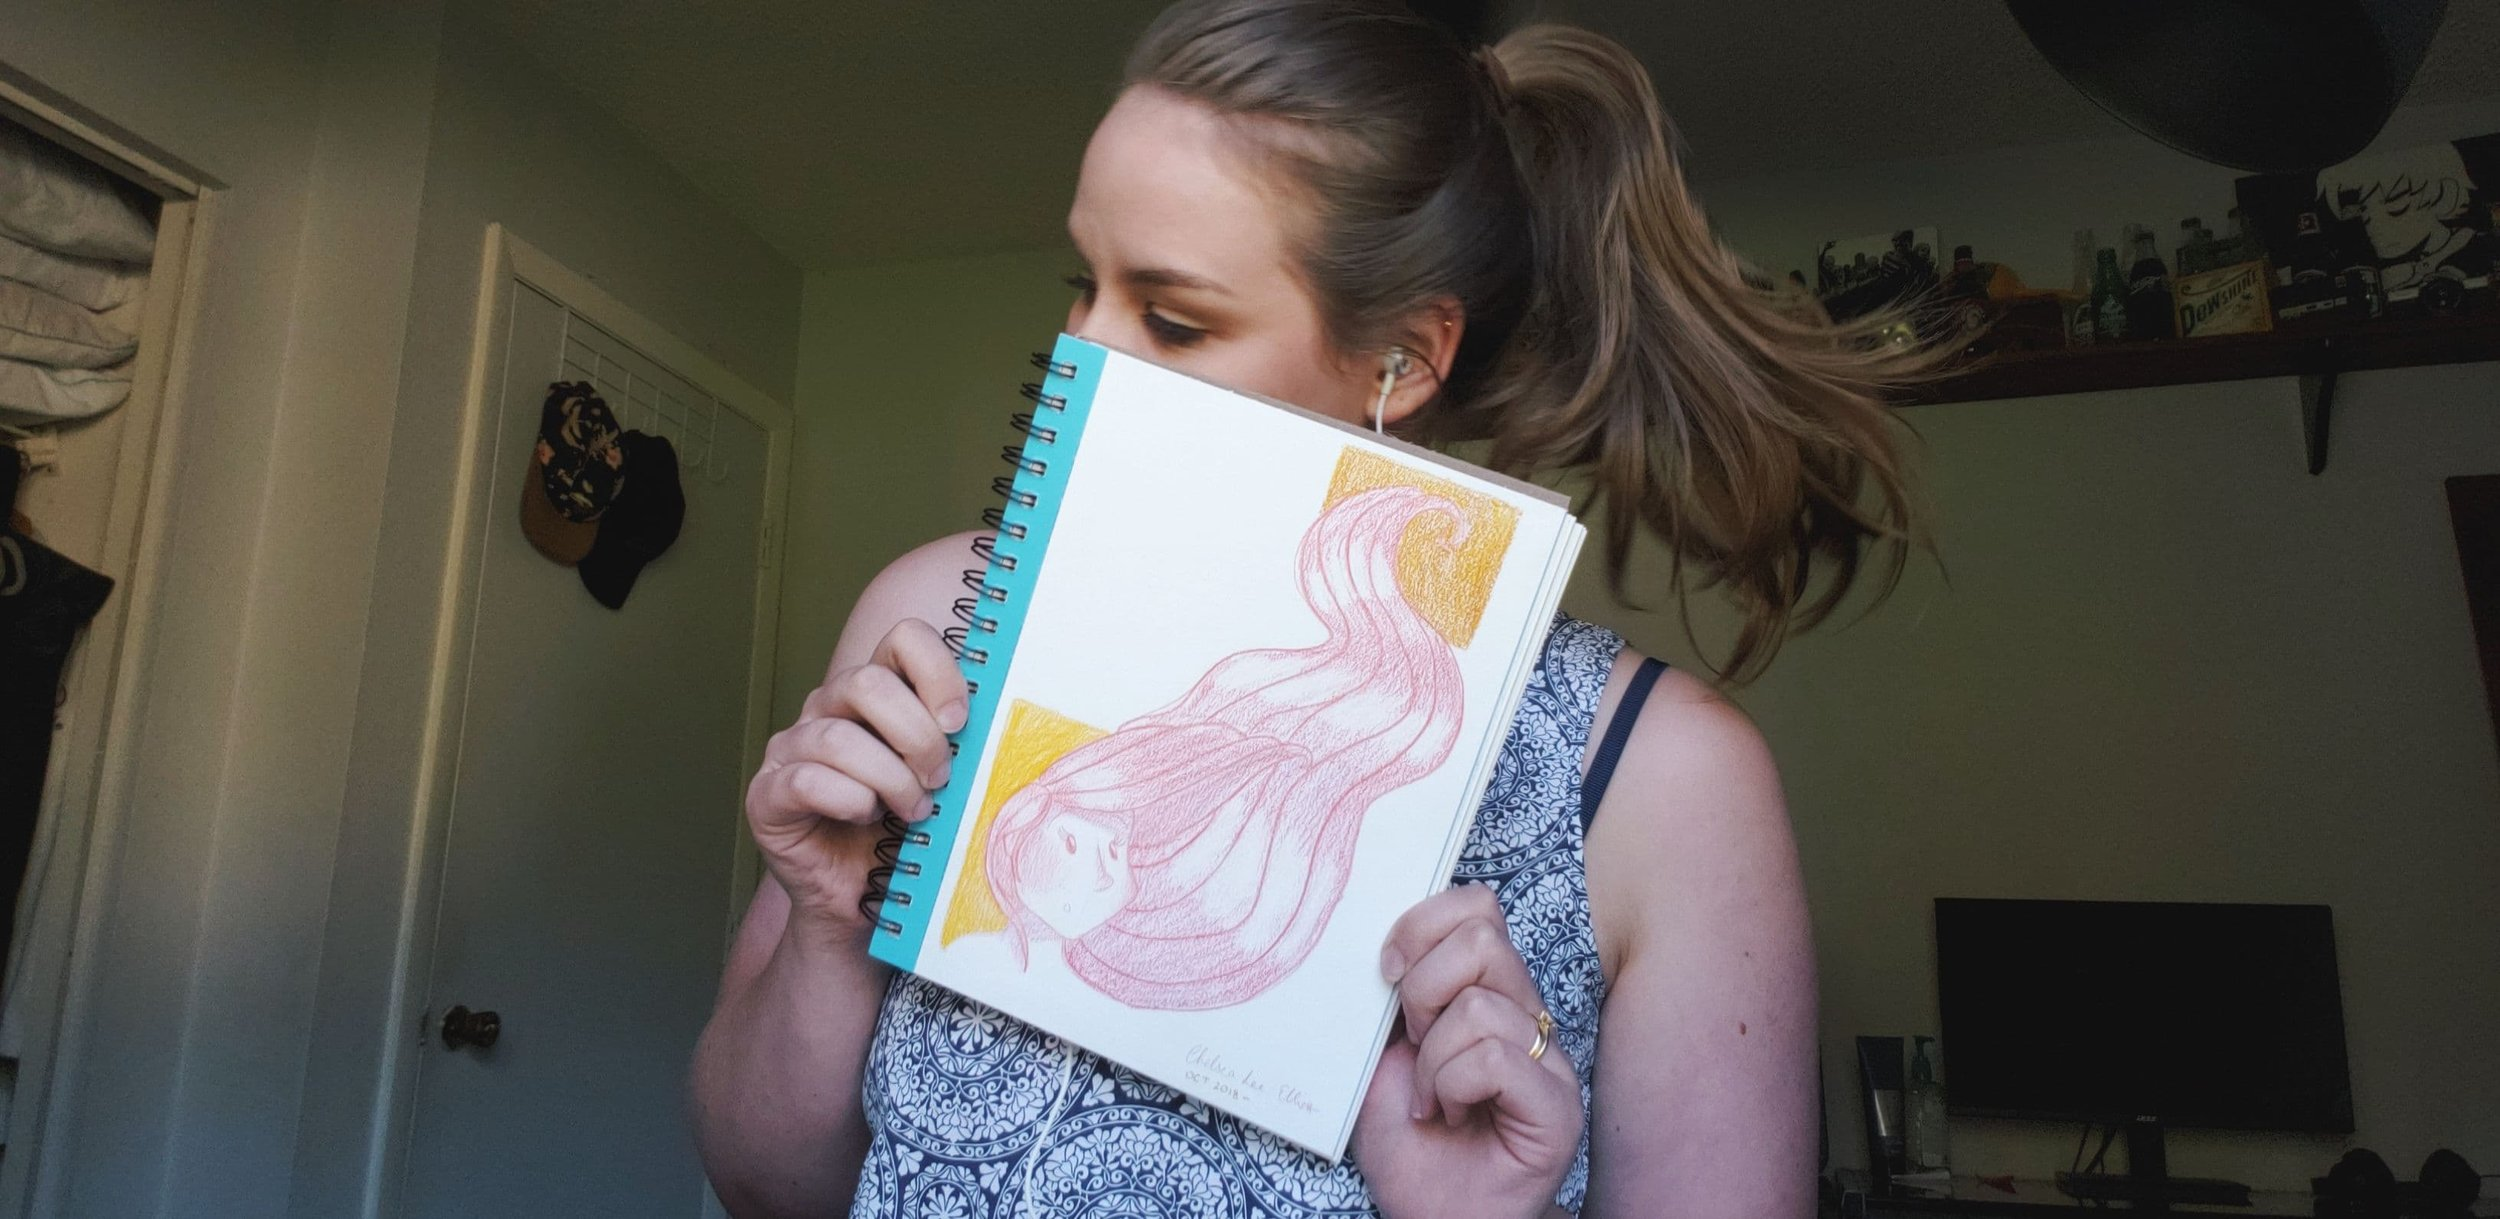 The cover of my new sketchbook that I've started this month!